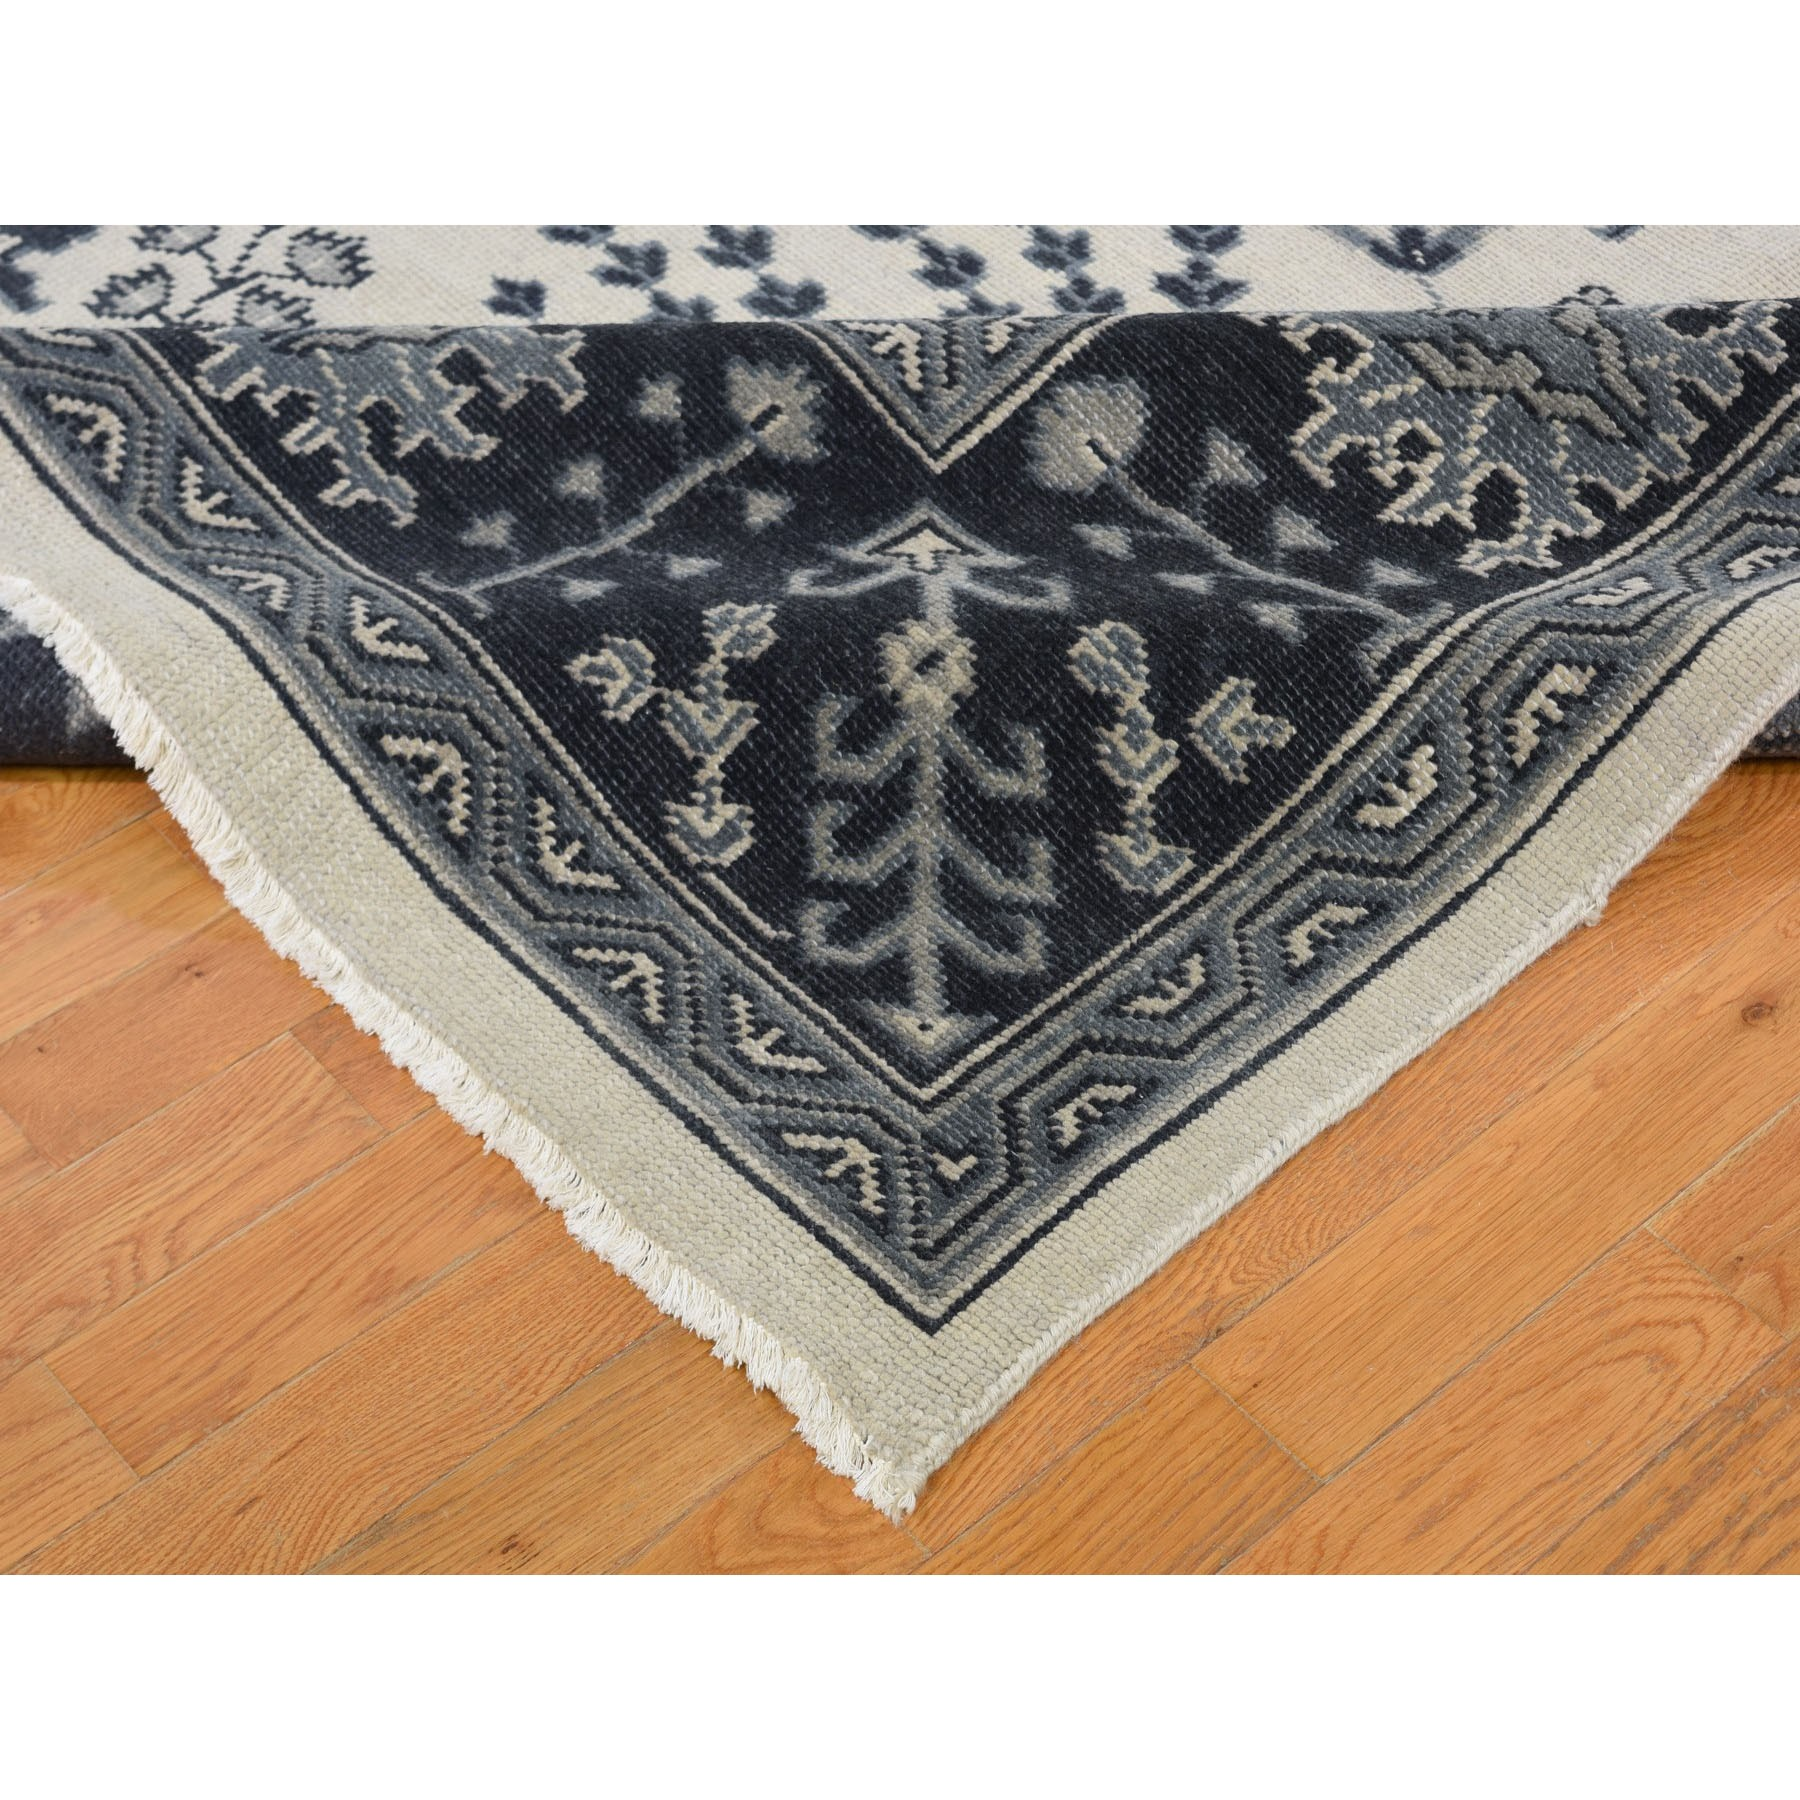 10'x14' Gray Turkish Knot Oushak Pure Wool Hand Knotted Oriental Rug